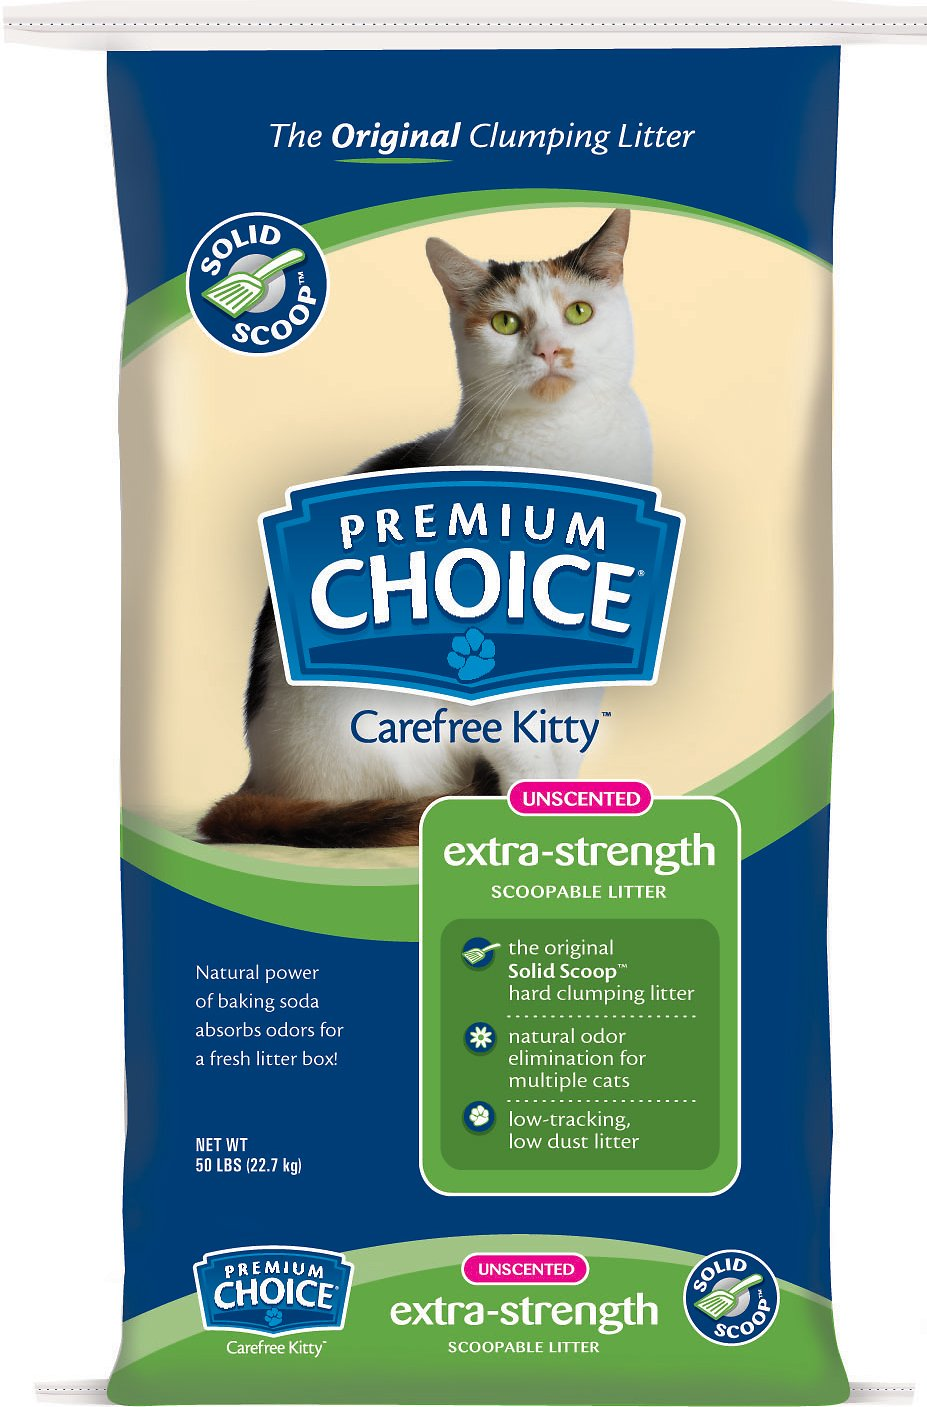 Premium Choice Carefree Kitty Unscented Extra Strength with Baking Soda Solid Scoop Cat Litter Image